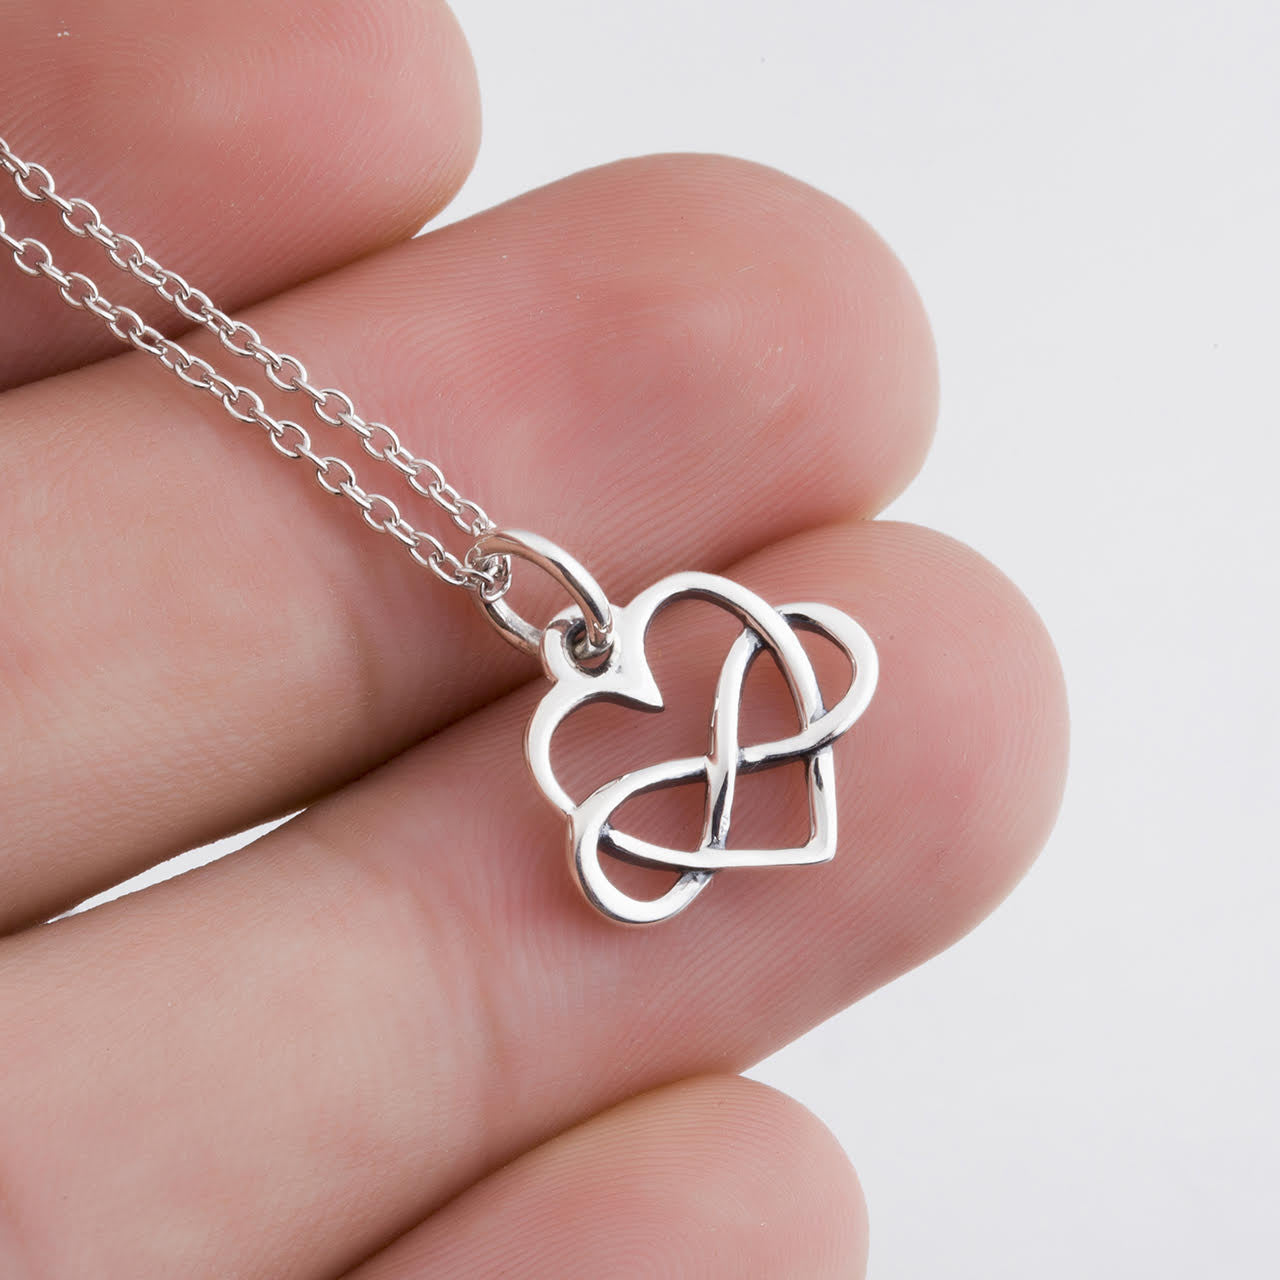 pendants pendant infinity necklaces tiffany co sign necklace infinitypendant blue sterling ed symbol in silver jewelry